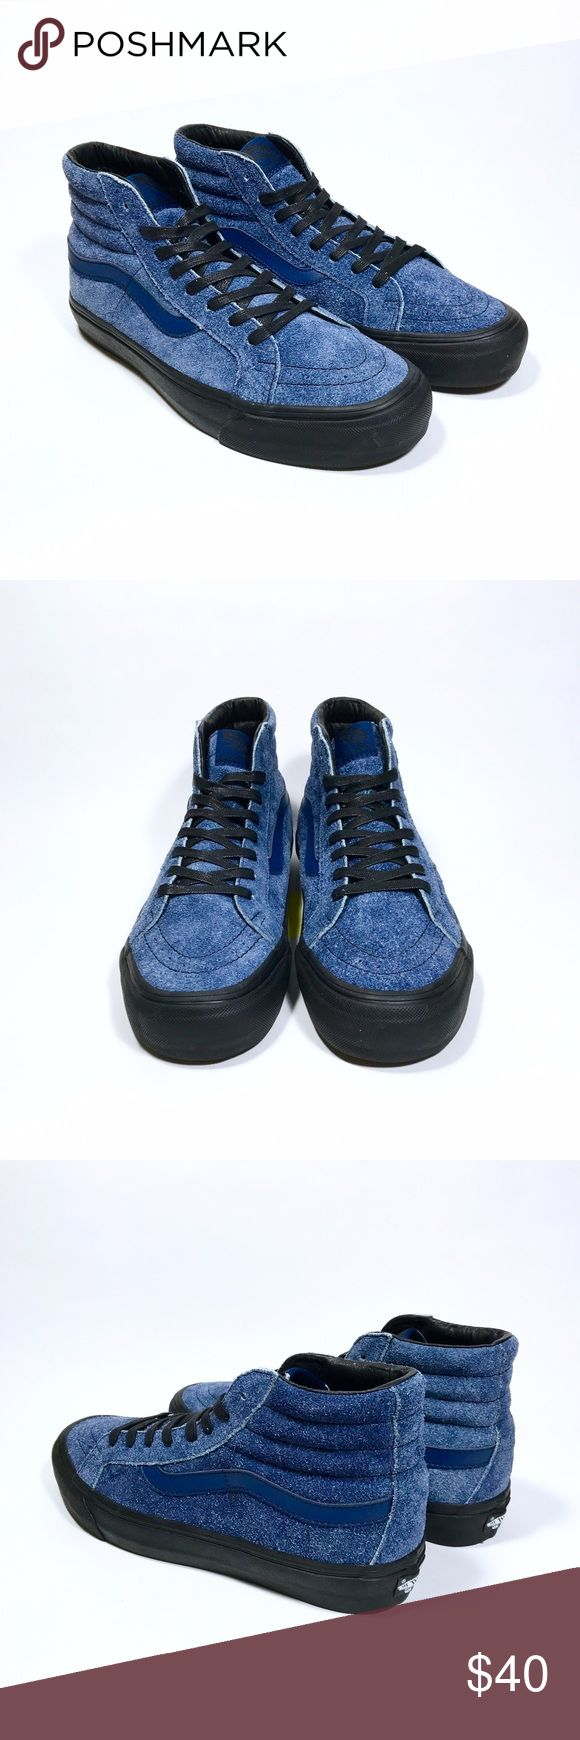 New Vans Sk8-Hi Maiden Noir Navy New Vans Sk8-Hi Maiden Noir Navy. Part of Vans Originals collection, this collaboration with Maiden Noir features the Sk8-Hi sneaker in navy blue high quality hairy suede and black shoe sole. Box not included. Men's size 9.0, Women's size 10.5. Vans Shoes Sneakers